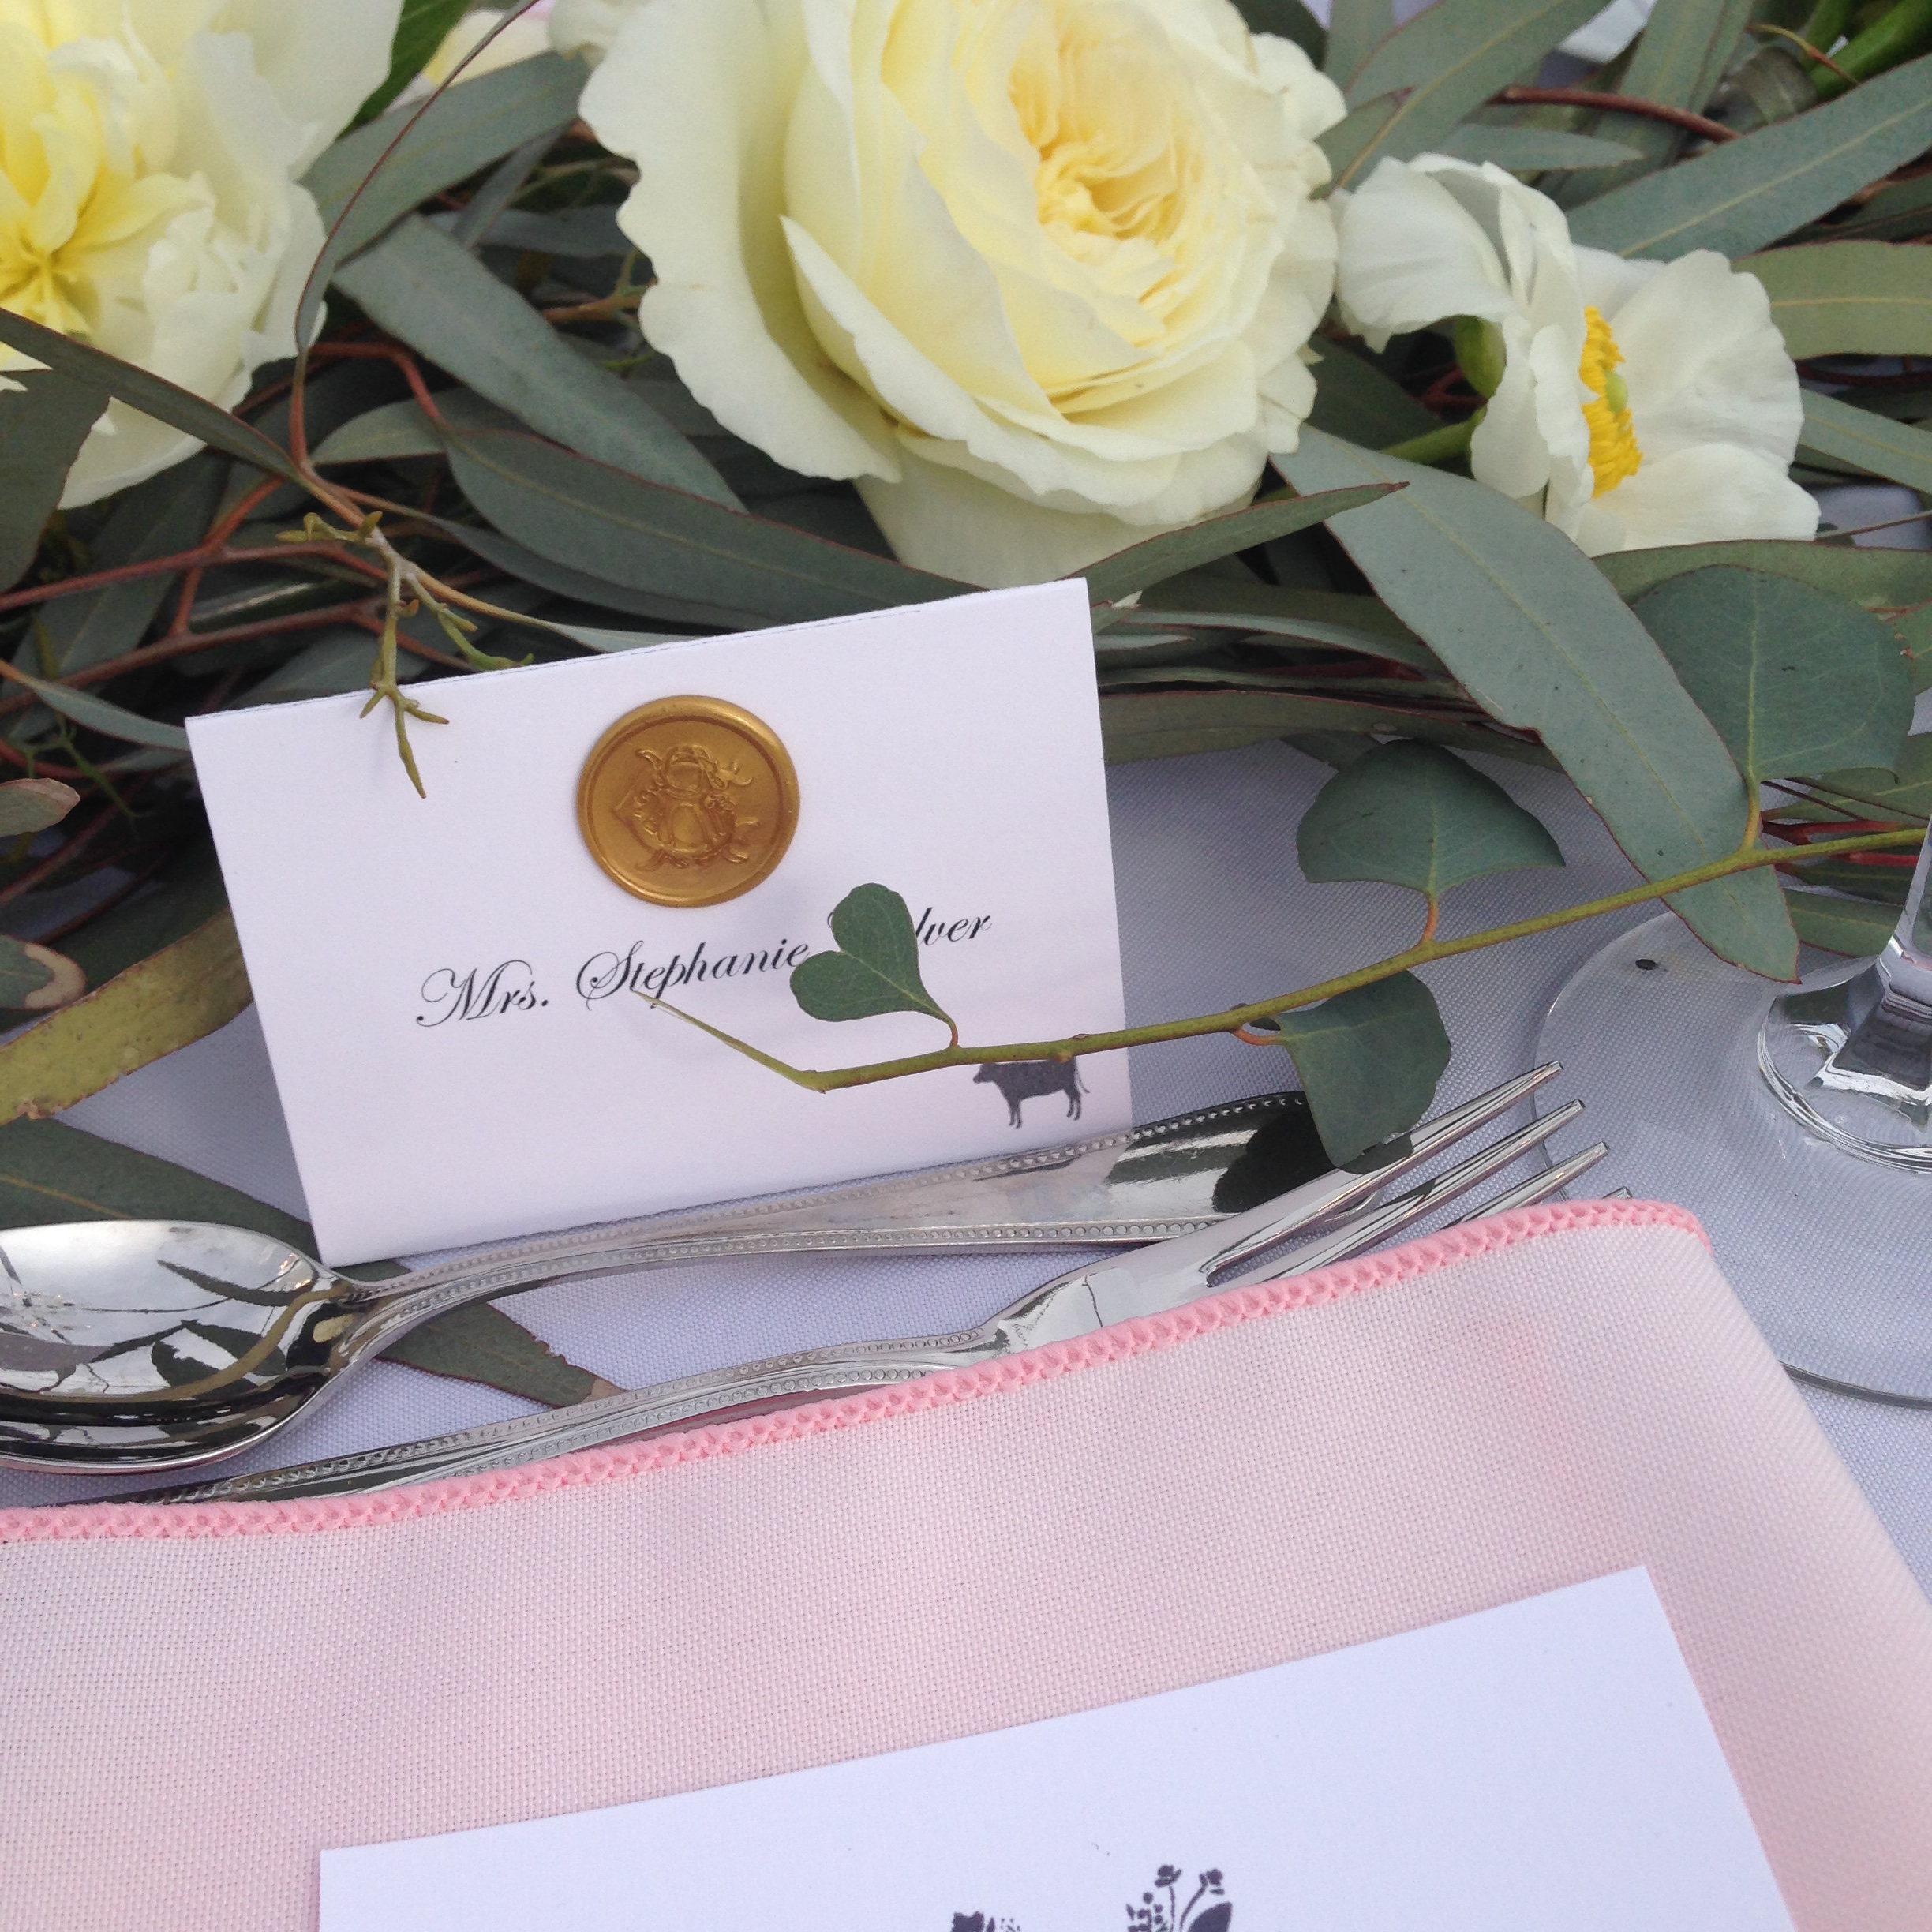 heart shaped eucalyptus leaf for the bride and groom